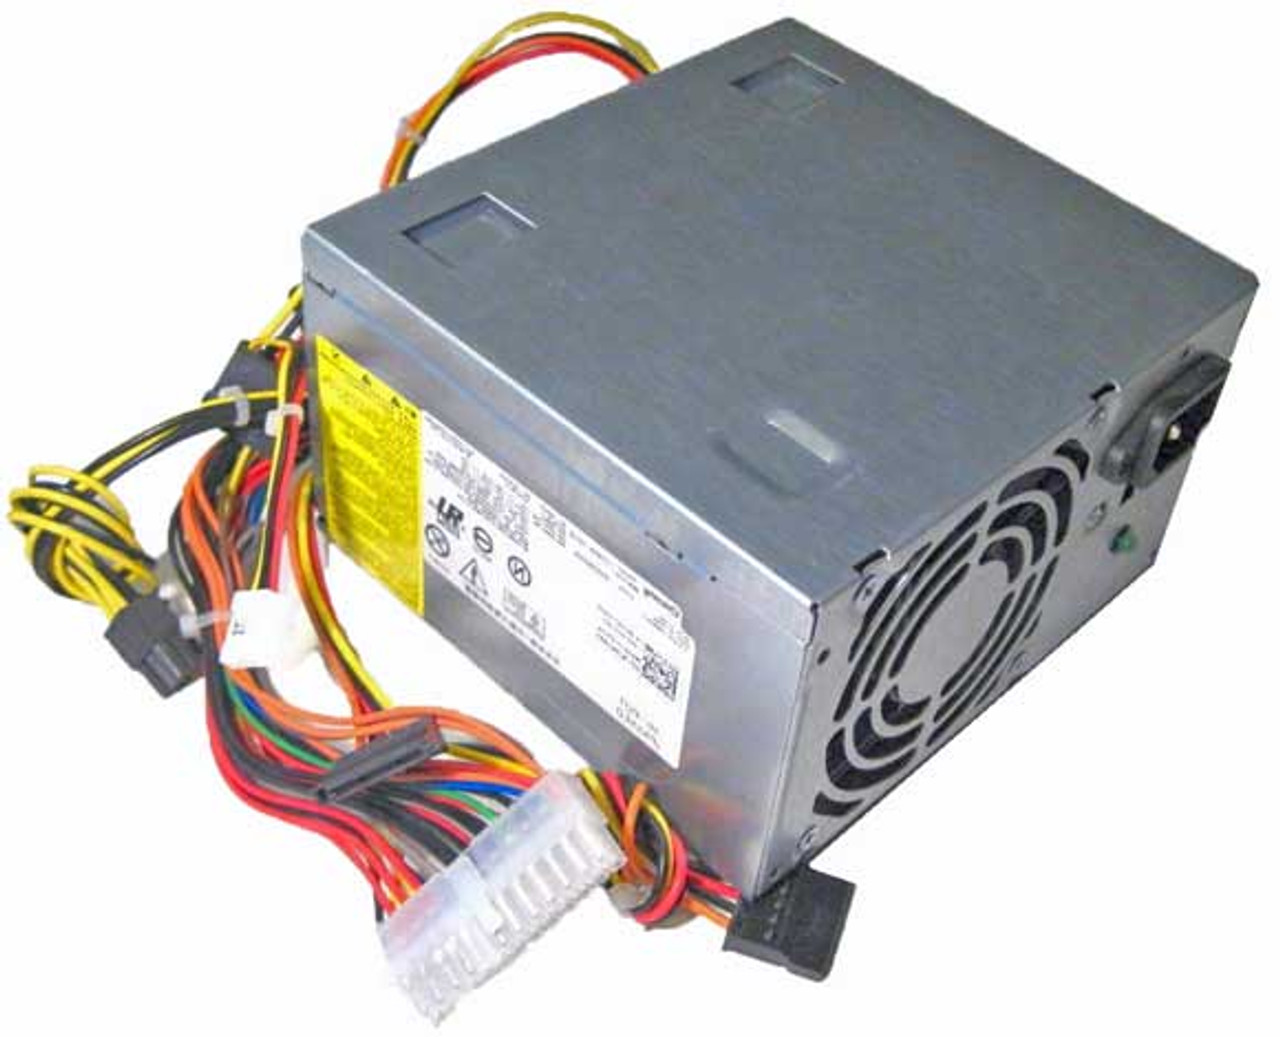 350w power supply unit psu for dell desktop computers rollover image to zoom in [ 1280 x 1037 Pixel ]